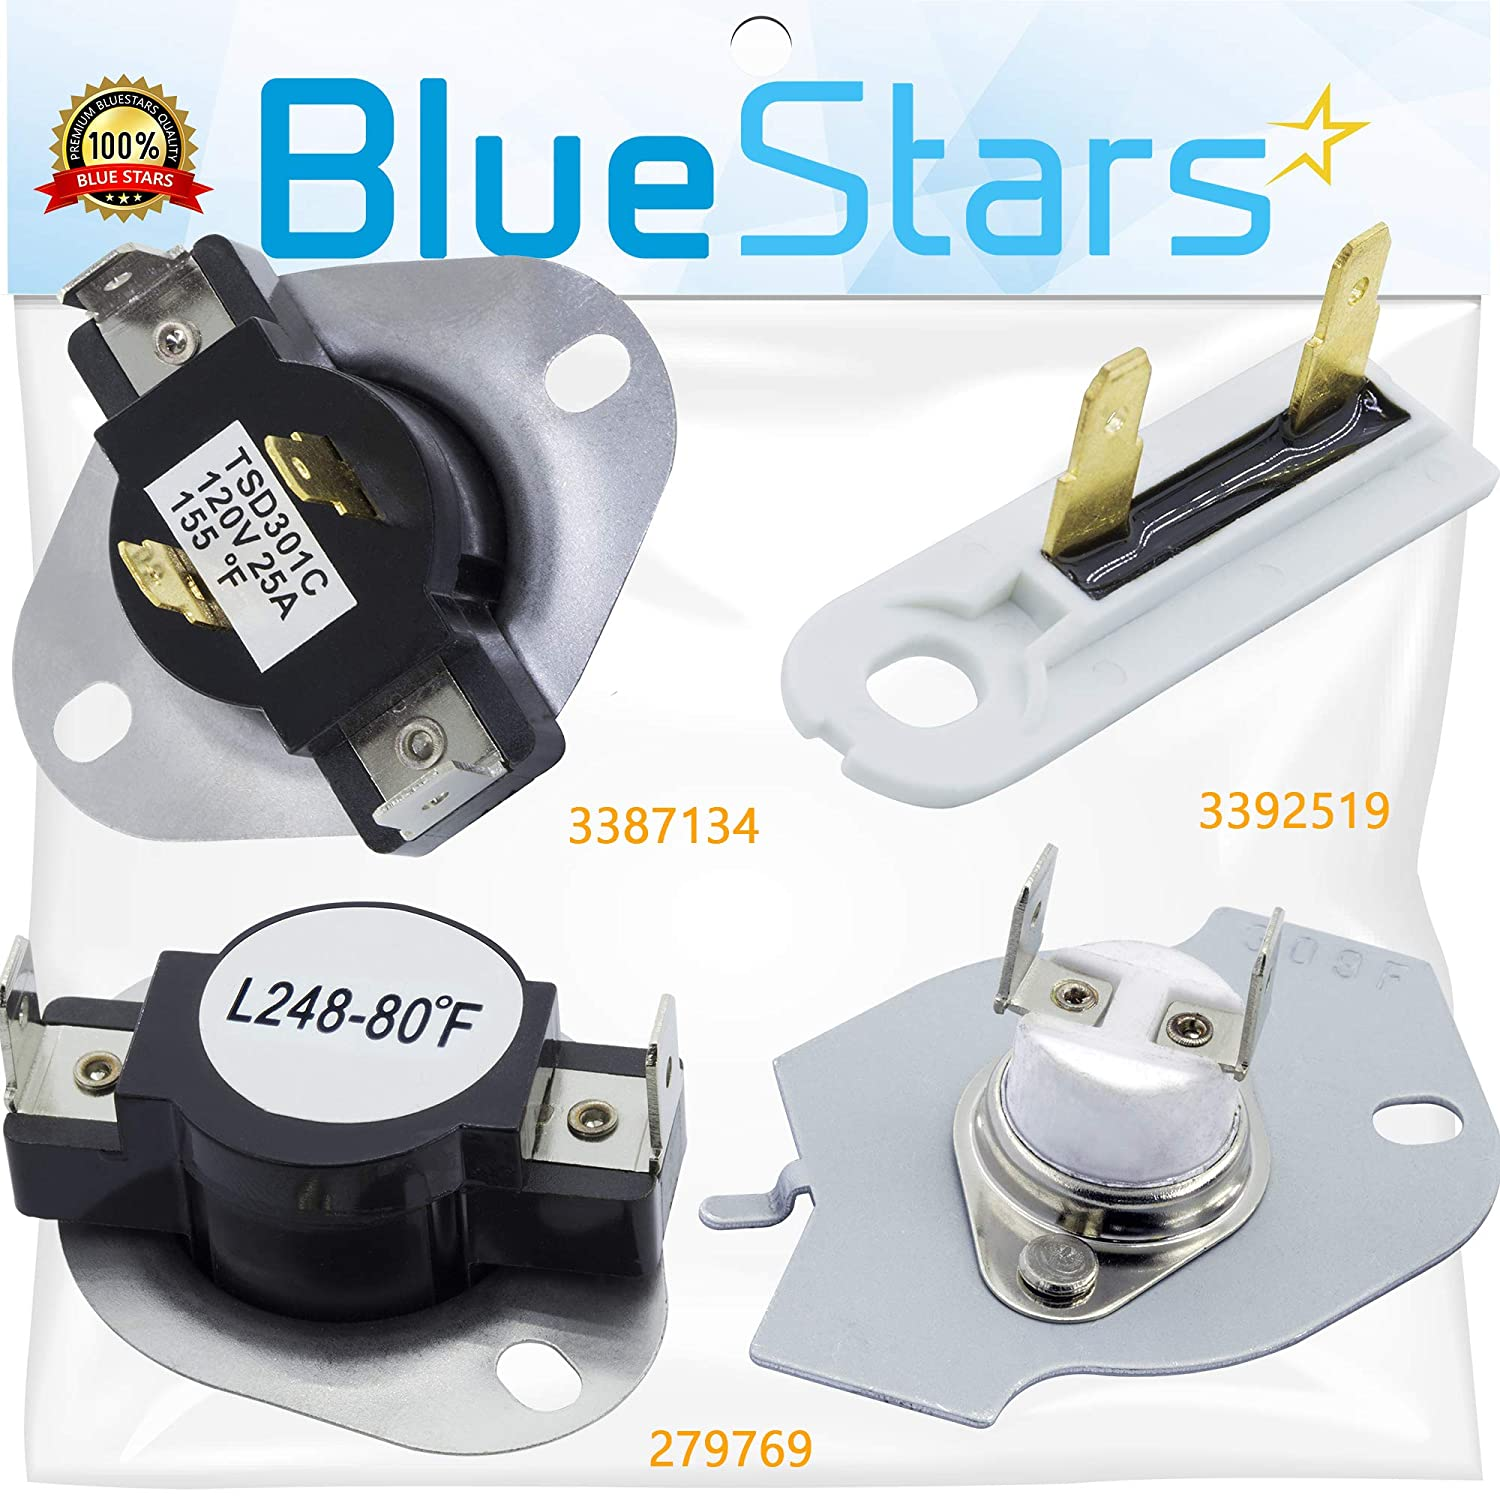 279769 Dryer Thermal Cut-Off Kit, 3387134 Dryer Thermostat and 3392519 Dryer Thermal Fuse by Blue Stars - Exact Fit for Whirlpool Kenmore Maytag Dryer - Replaces 3977394 3390291 PS345113 AP6008325